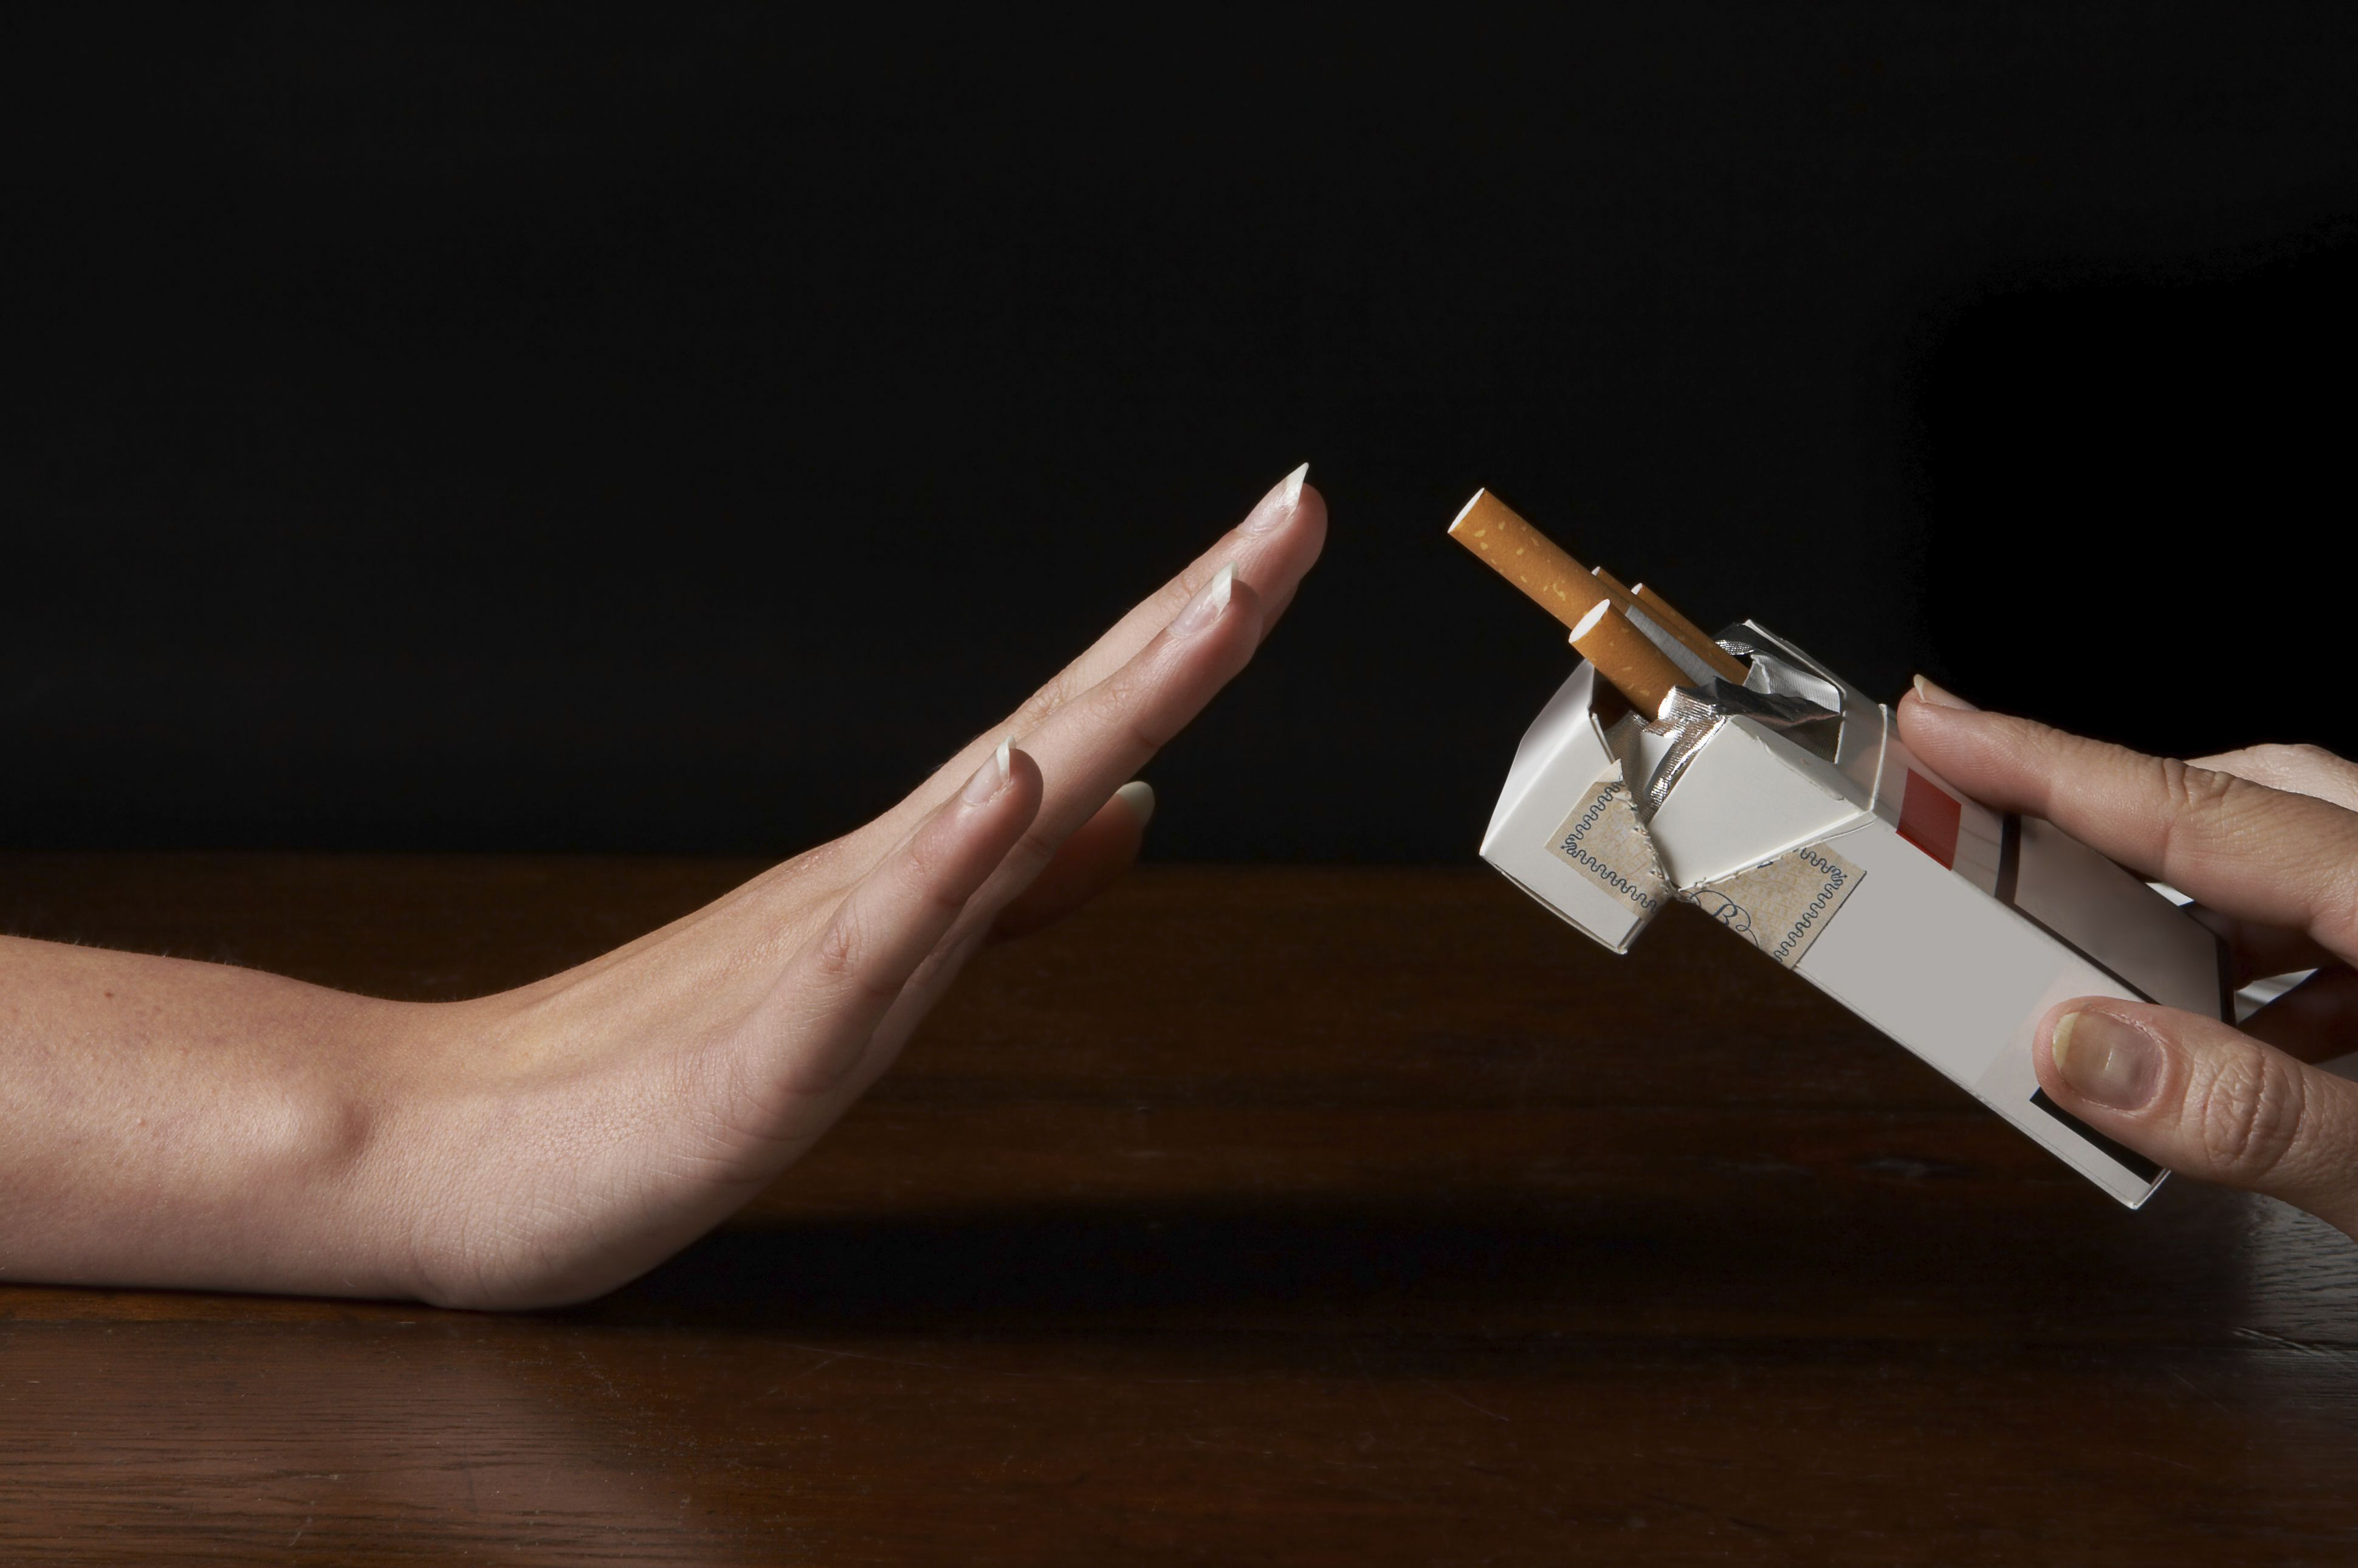 Does Nicotine Cause Cancer or Make Cancer Spread Faster?